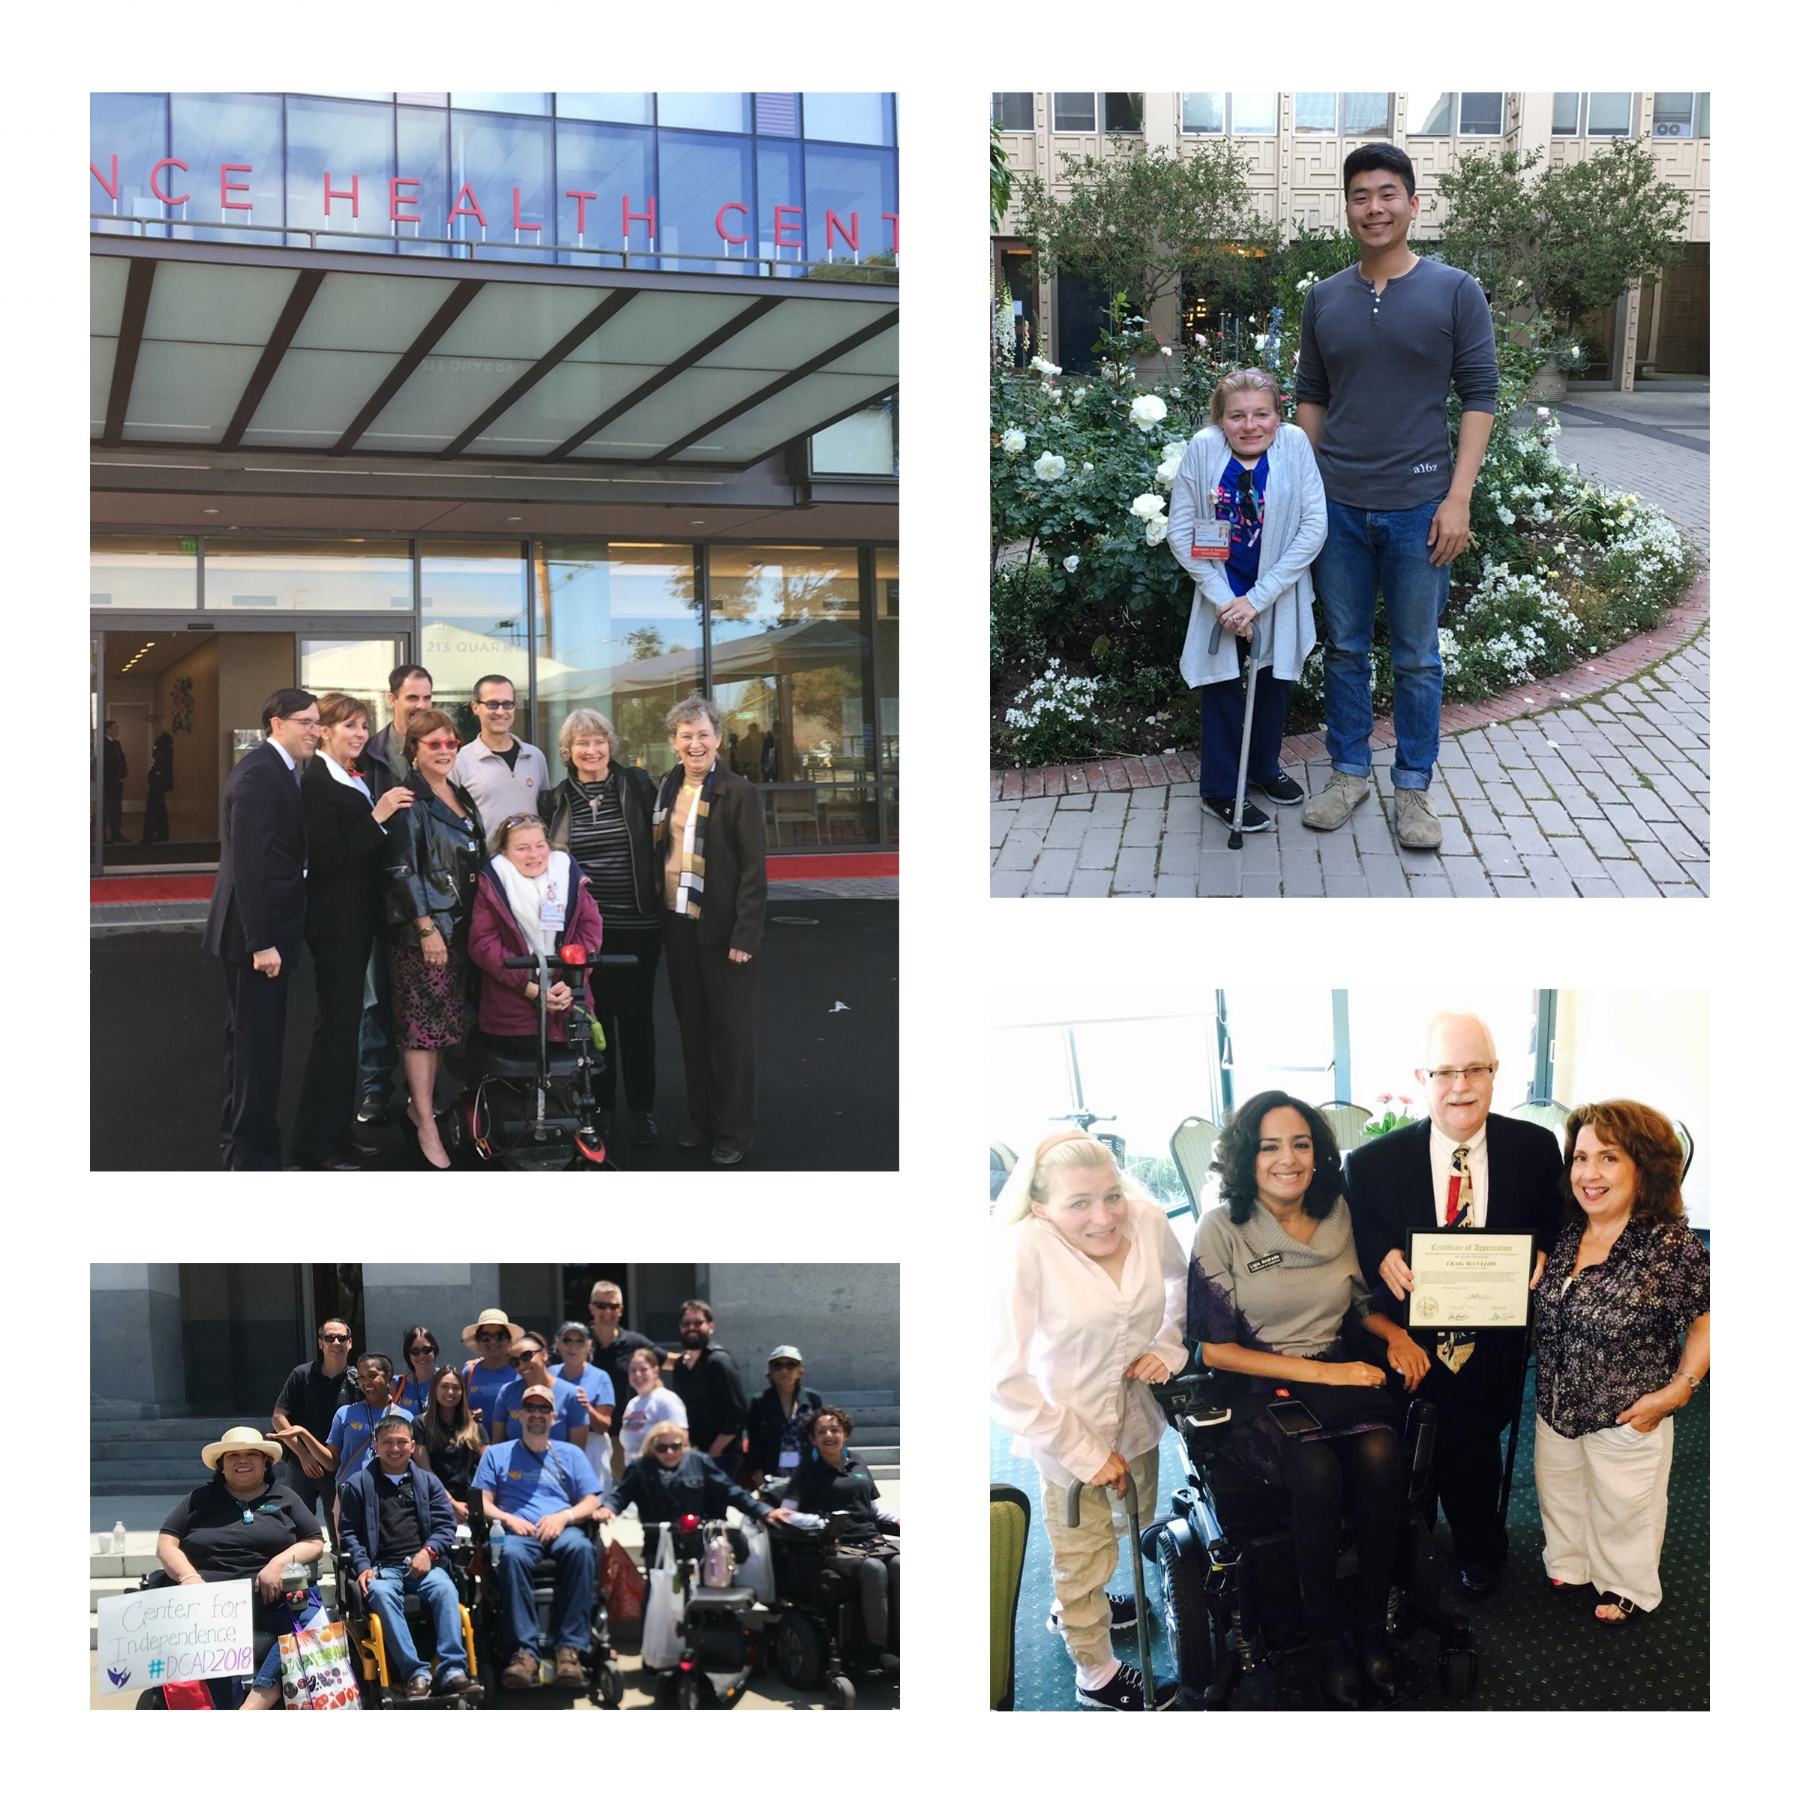 Top Left: Opening celebration of the NueroScience Health Center at Stanford Healthcare with Neuro Patient and Family Advisory Council (PFAC).  Top Right: Myself and Bright, a first year medical student I helped mentor through a program at Stanford Healthcare.  Bottom Left: Disability Capital Action Day in Sacramento, June, 2015. Board and Staff of the Center for Independence of Individuals with Disabilities (CID)  Bottom Right: Disability Advocates, myself, Ligia Andrade, Craig McCullough and MaryLou Naccarato at a San Mateo County luncheon.